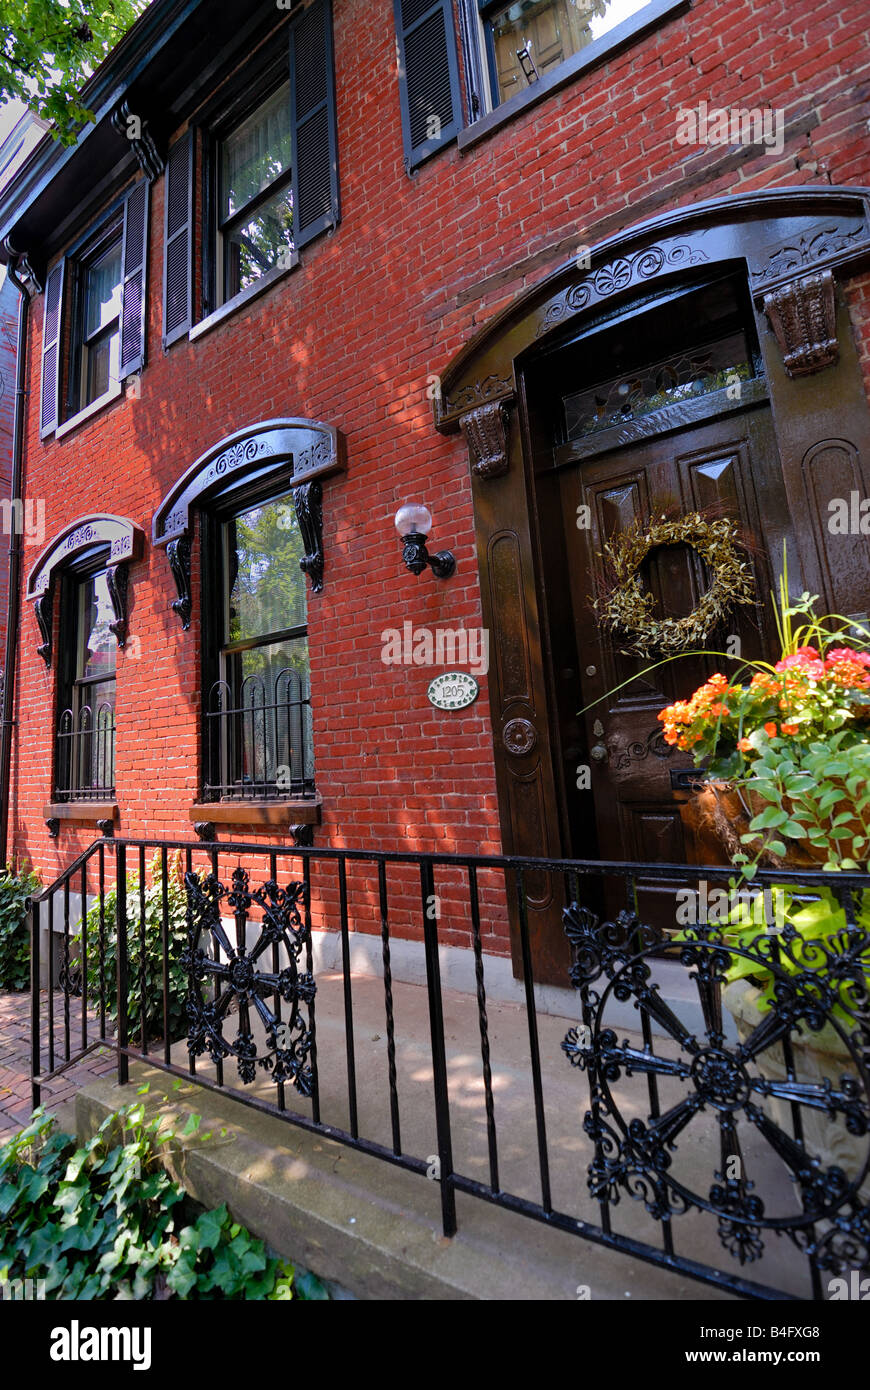 This historic Victorian home is located in Pittsburgh, Pennsylvania' s Mexican War Streets neighborhood. - Stock Image